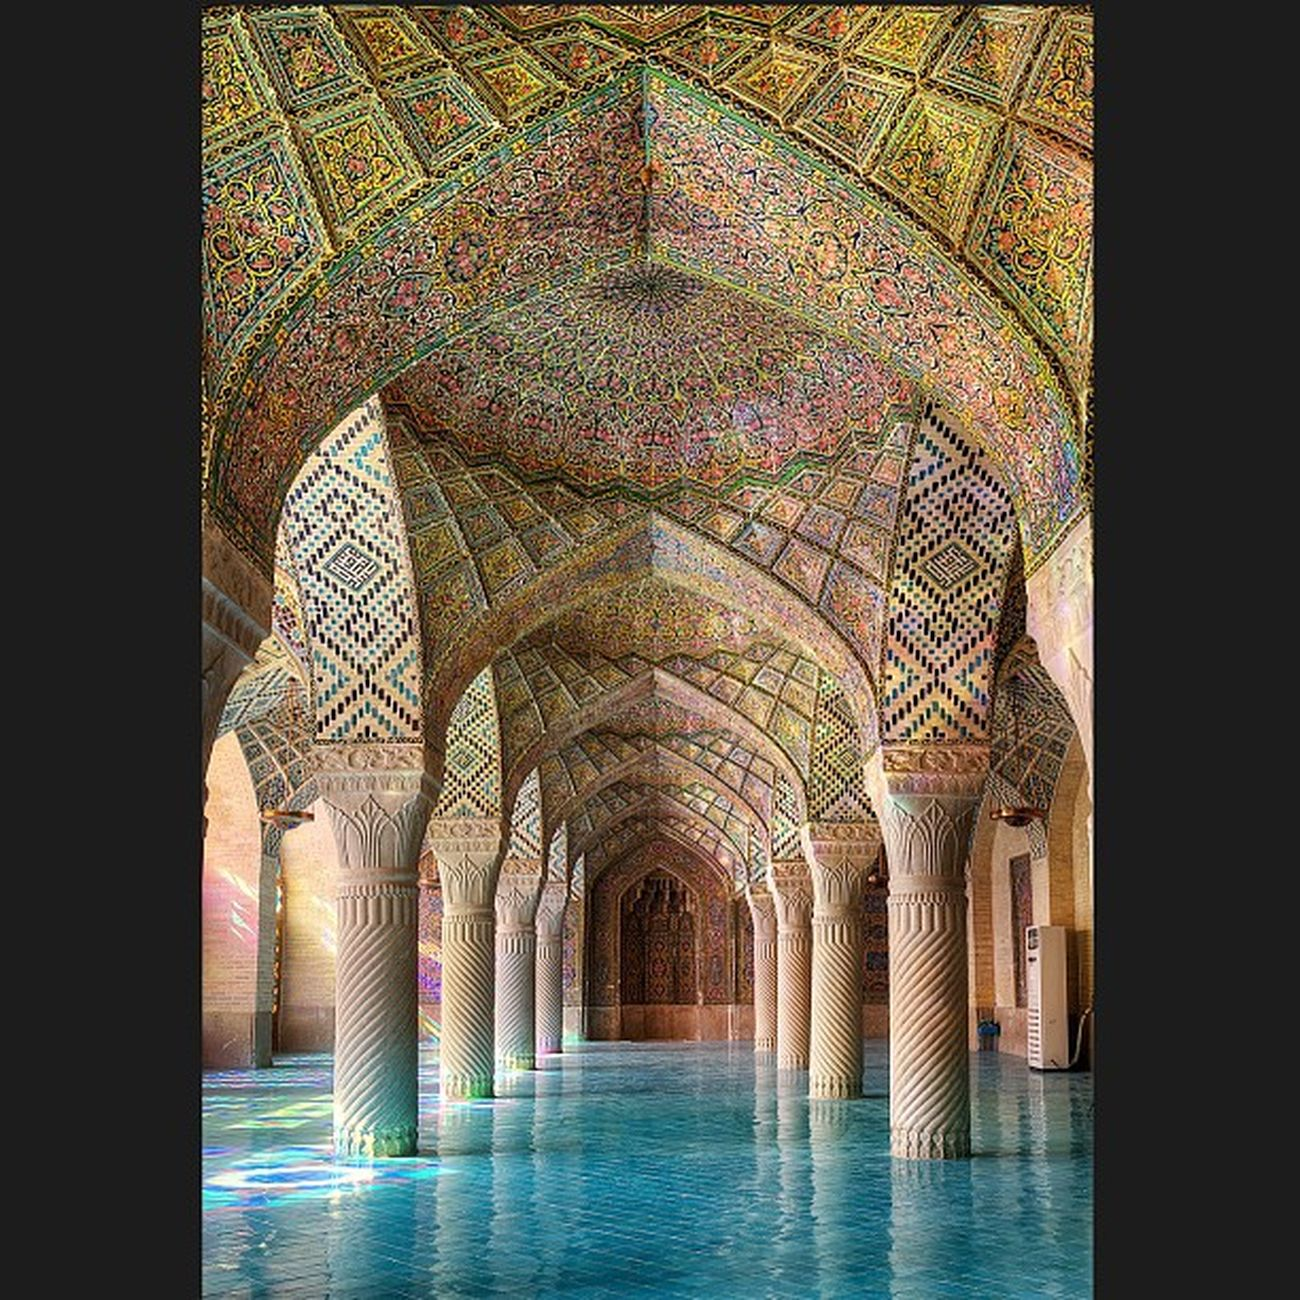 The Mosque of Colors - here is Nasir -ol-MOLK Mosque - Shīrāz - Iran . از مجموعه مسجد رنگها - مسجد نصیرالملک - شیراز - ایران Photo by: Ramin Rahmani Nejad